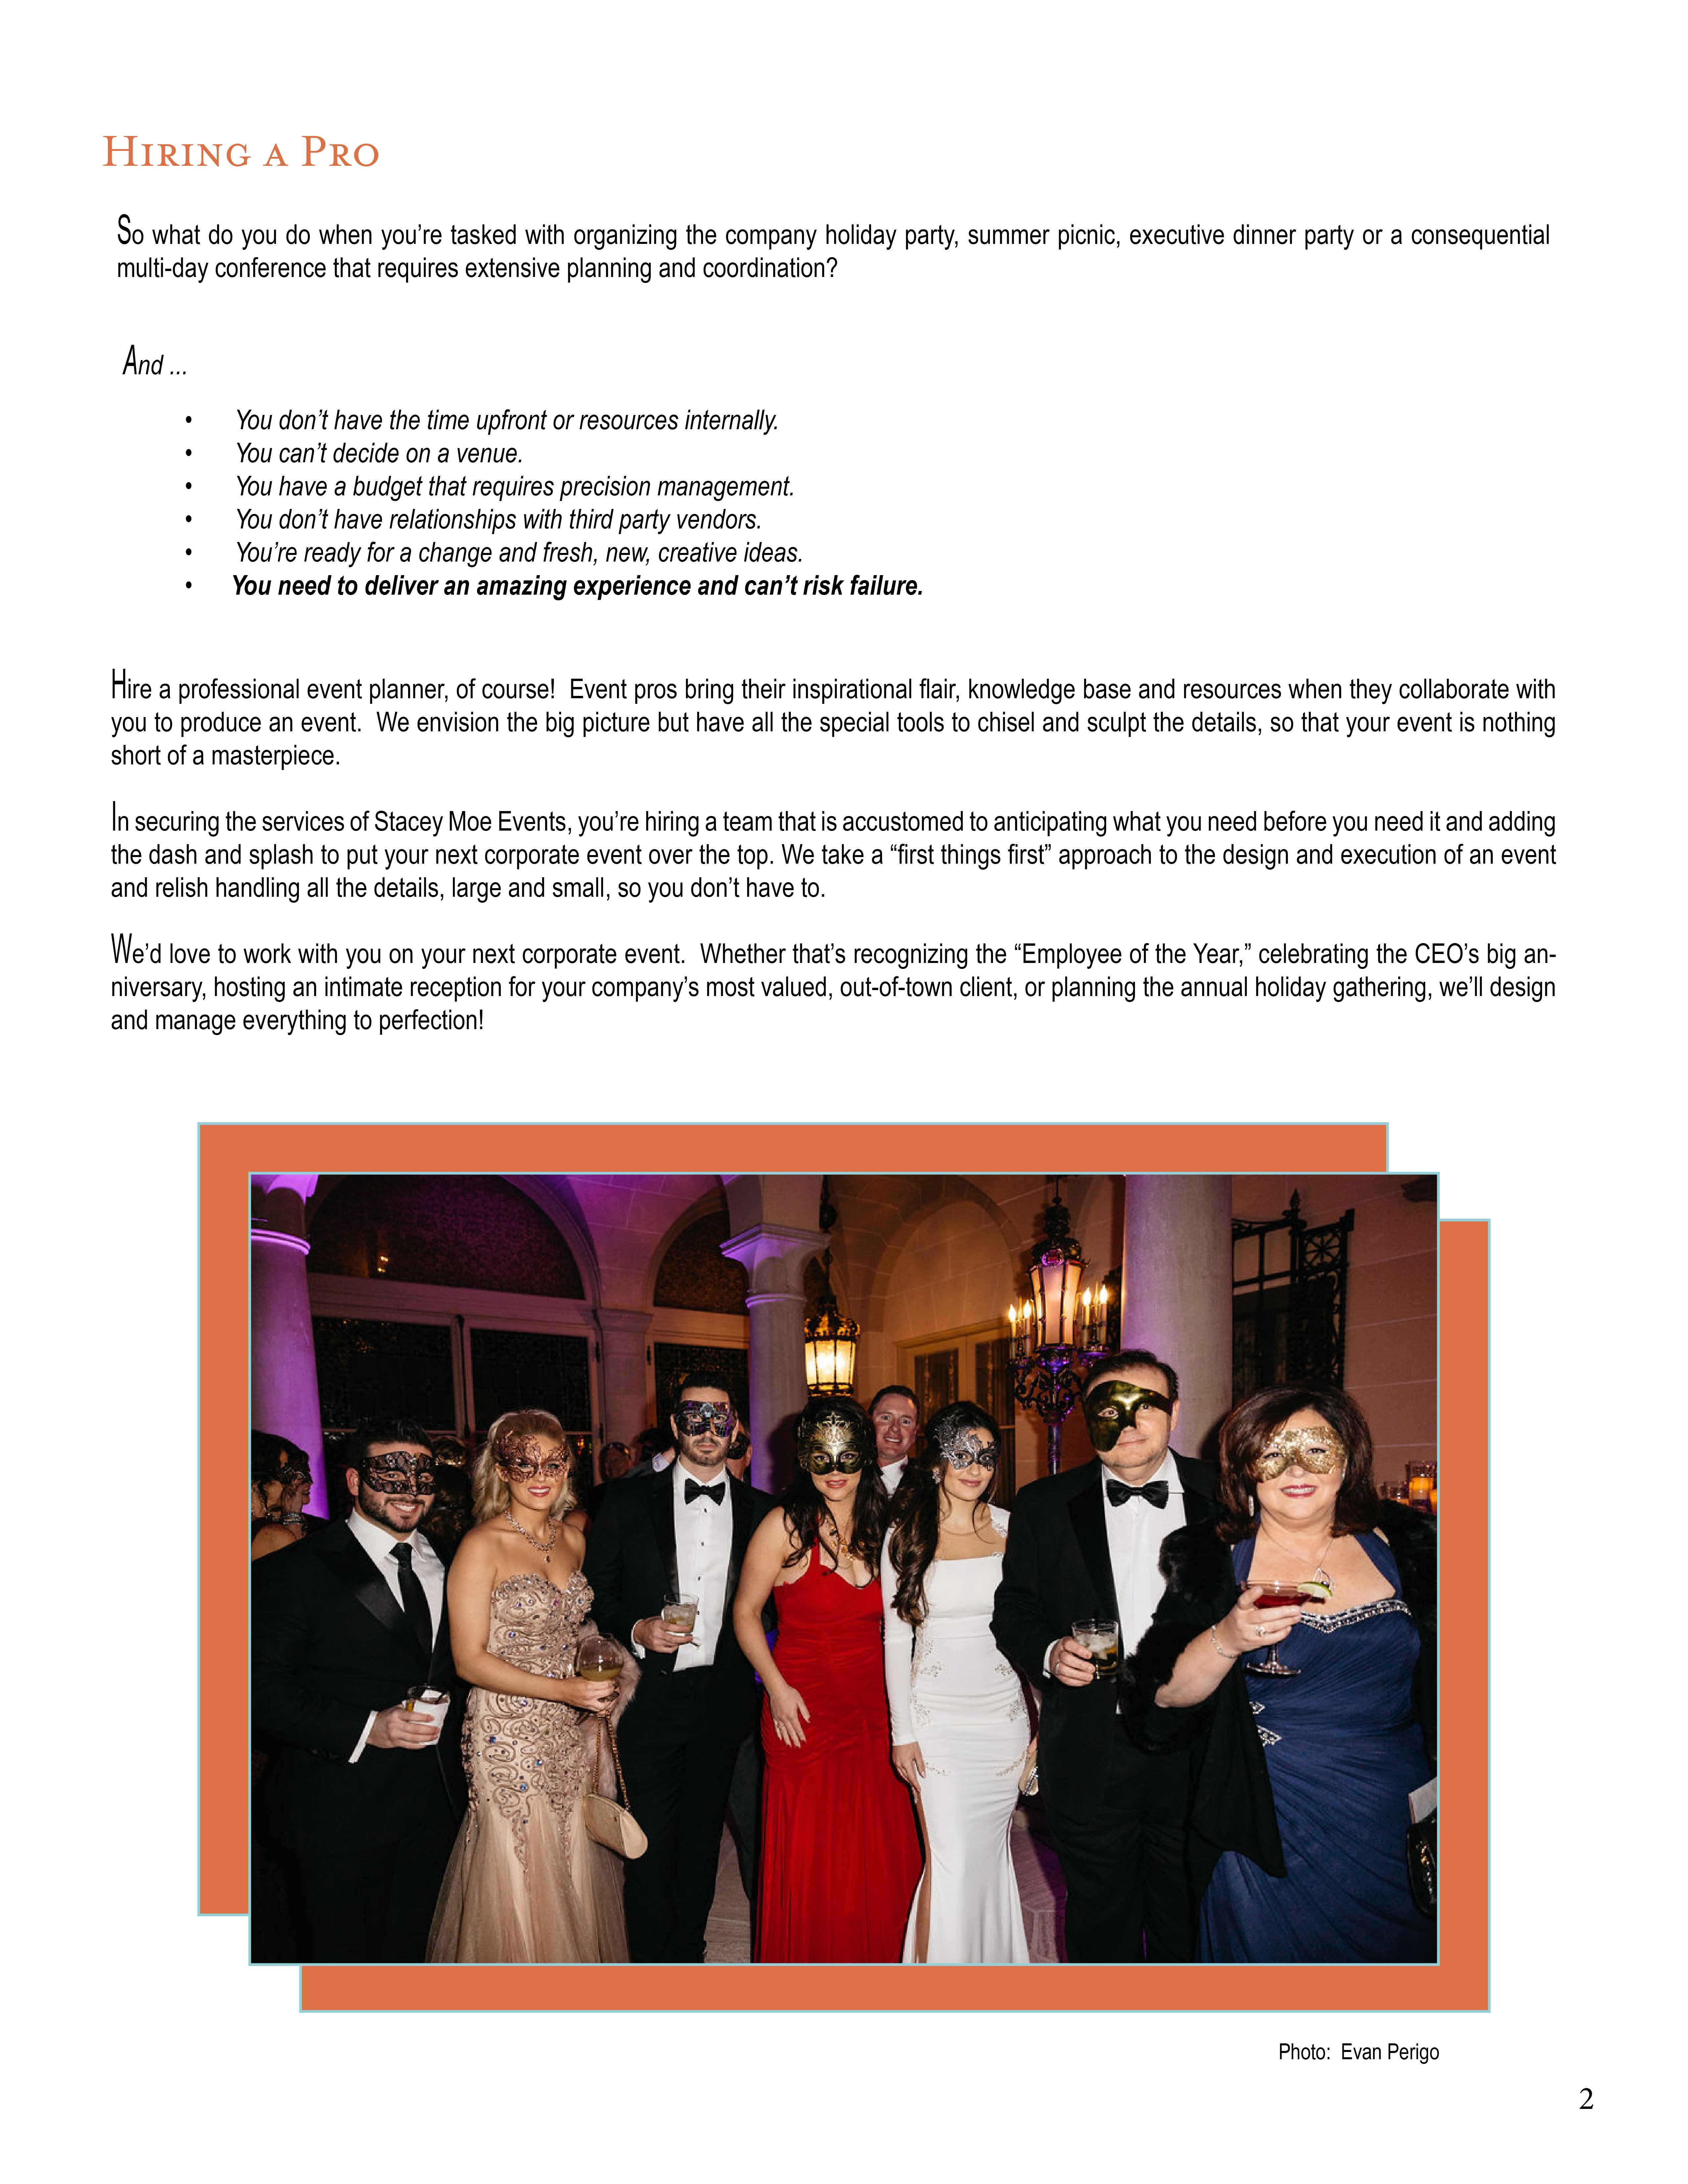 Stacey Moe Events Corporate Brochure2